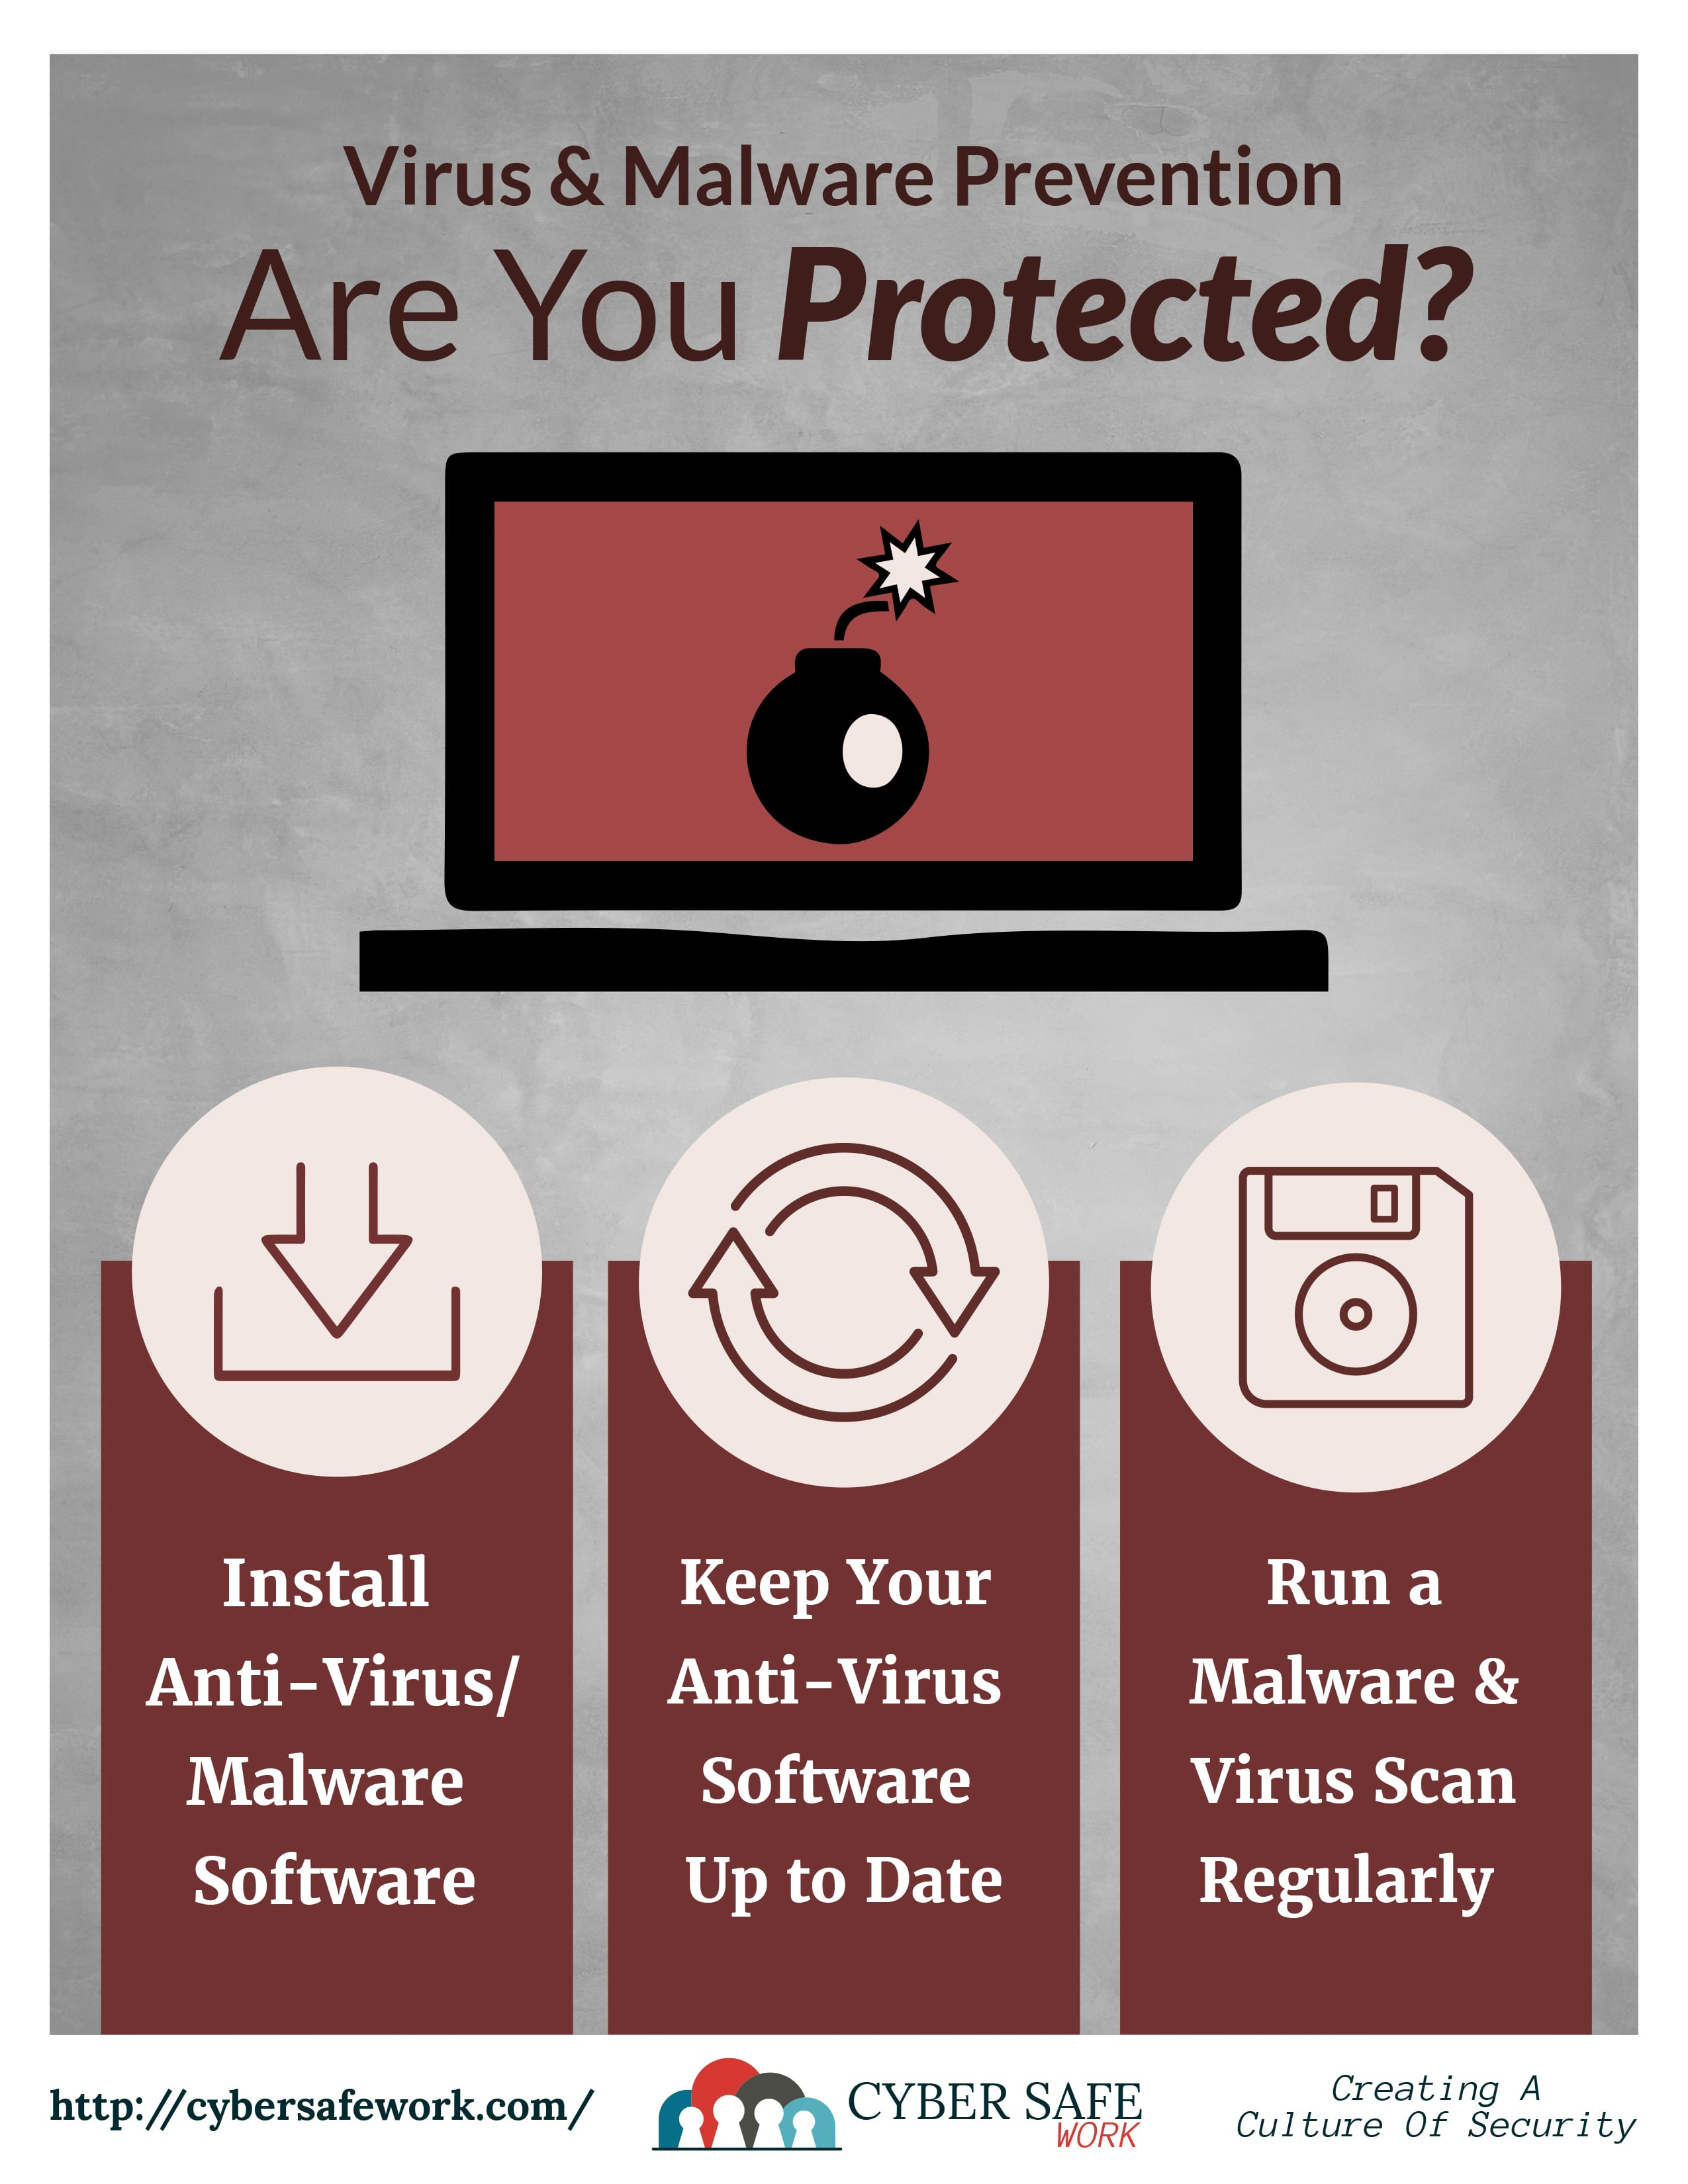 Cyber Safe Work Security Awareness Poster May 2019 -